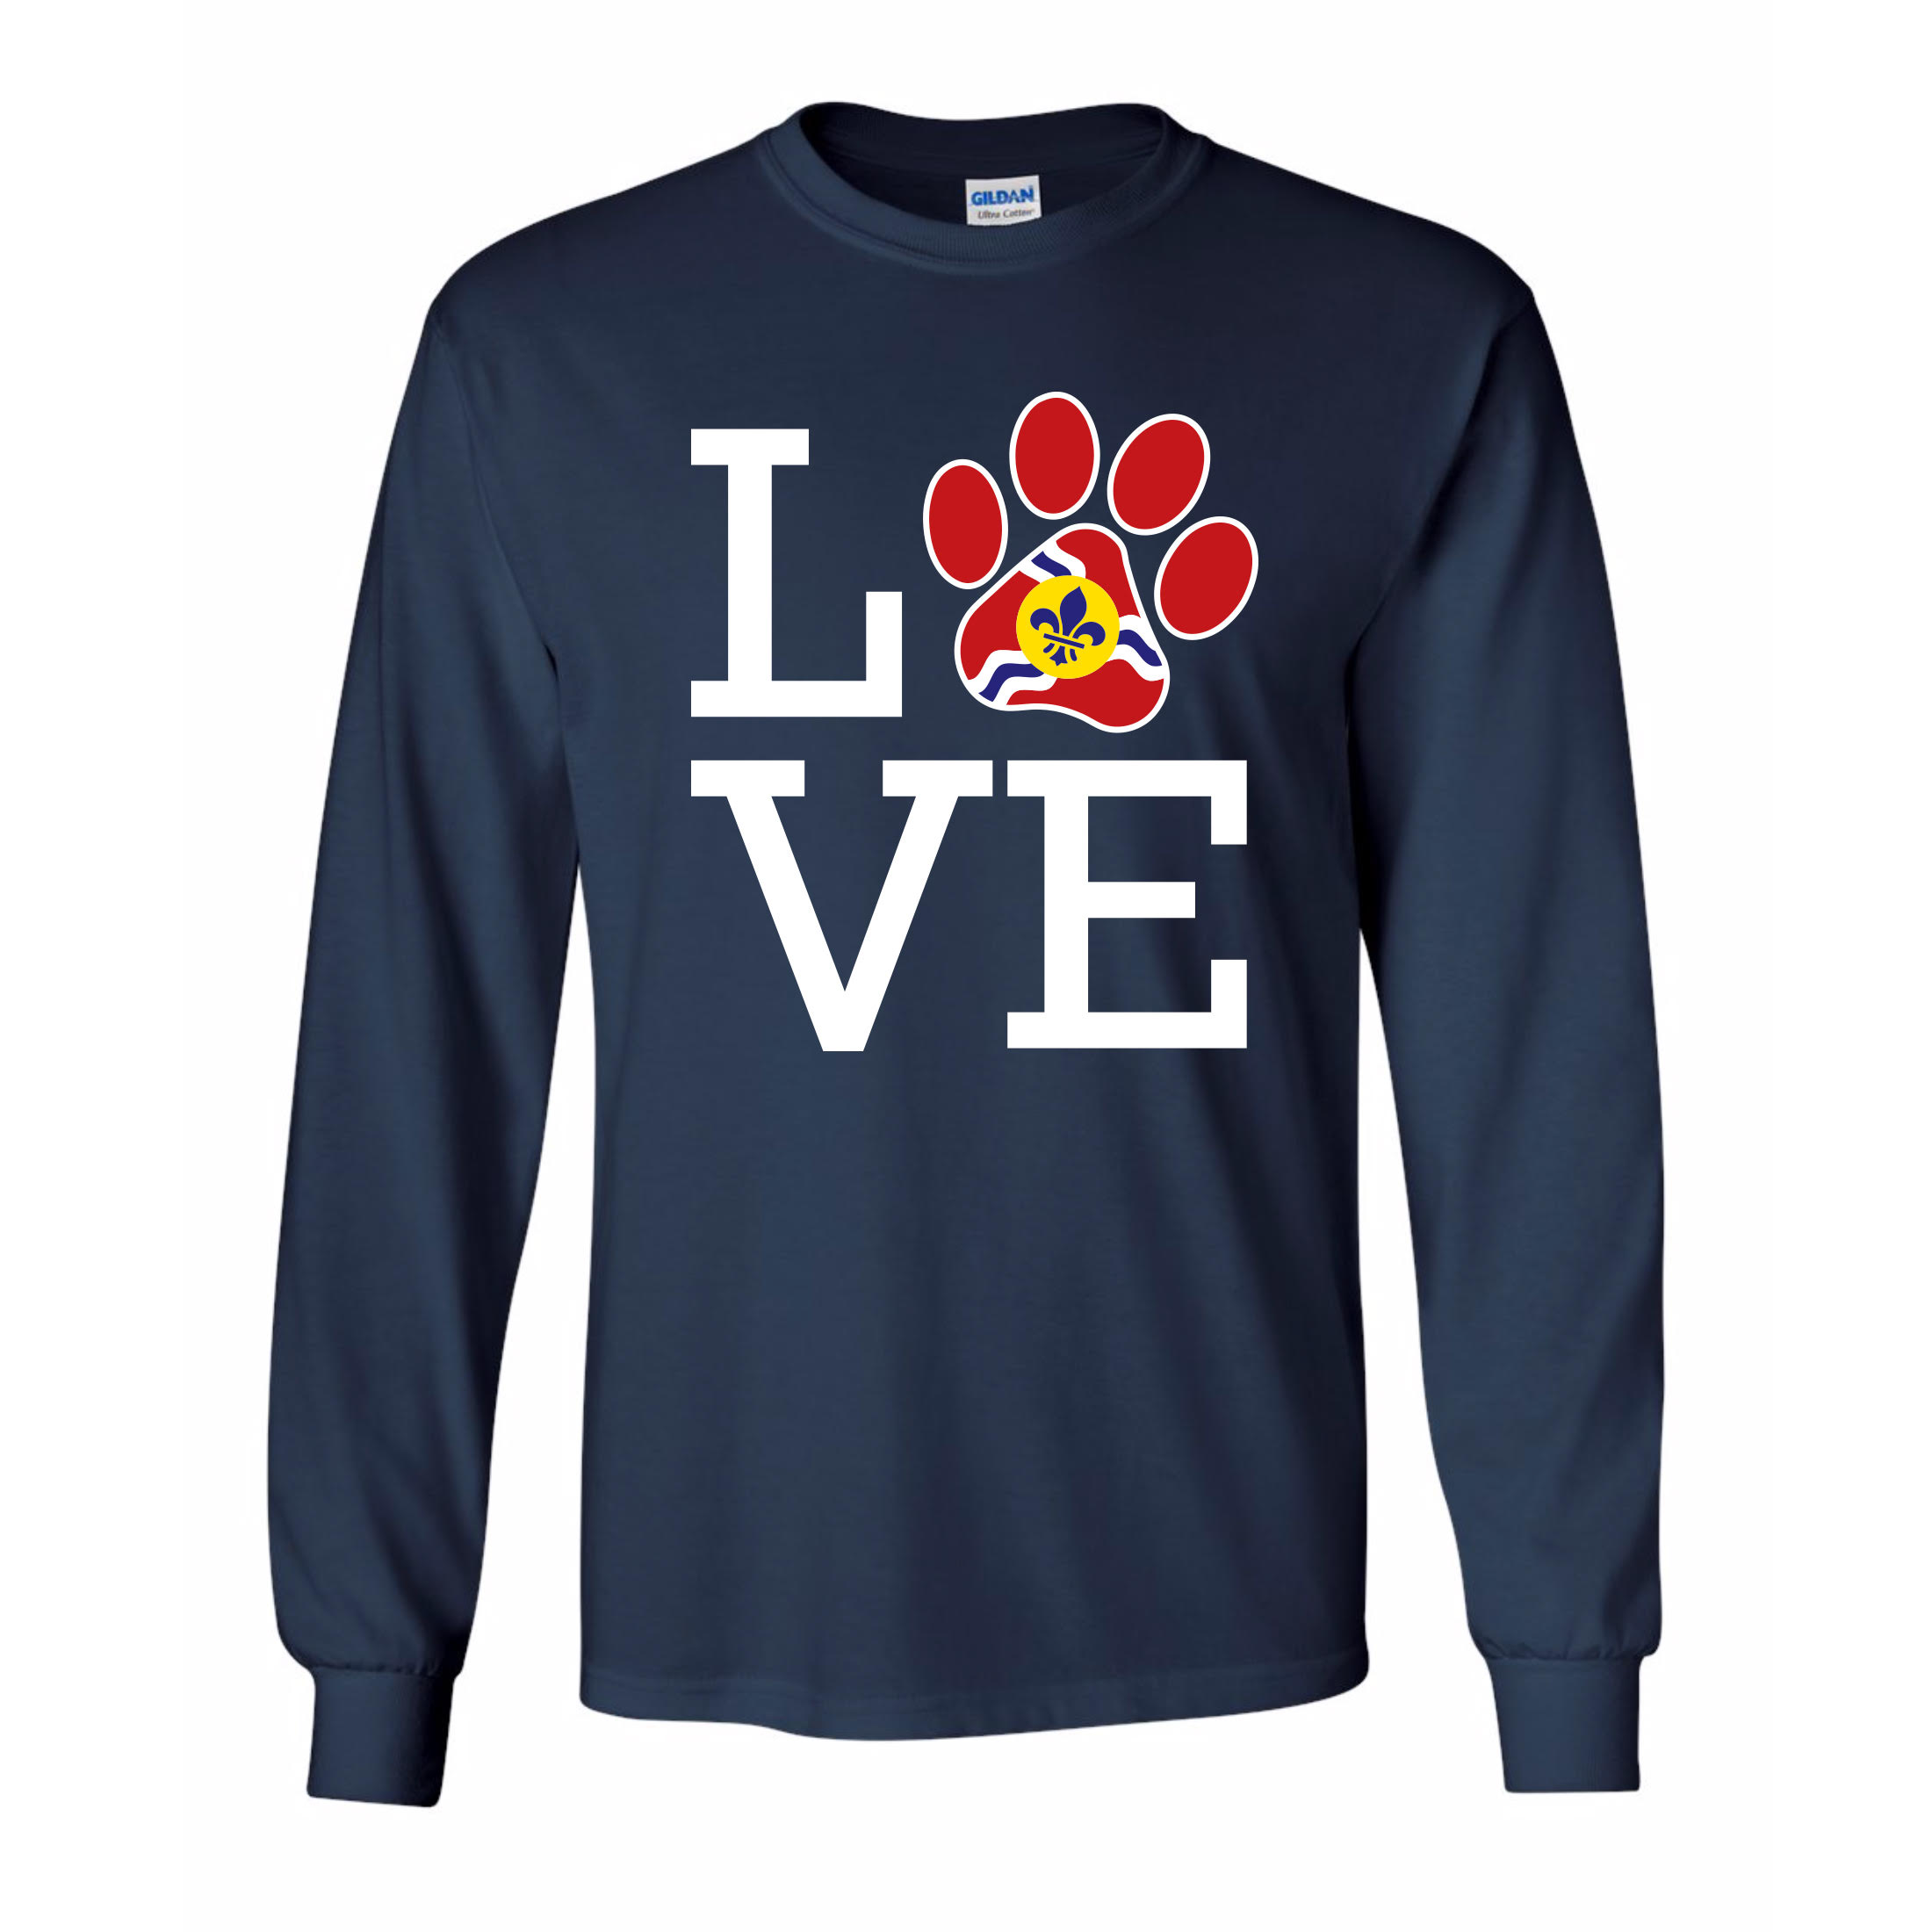 """- Long Sleeve Navy """"STL Love""""$25.00- Super Soft combed and ringspun cotton or cotton/polyester depending on color- Side seams, retail fit- Shoulder to shoulder taping- Unisex sizing"""